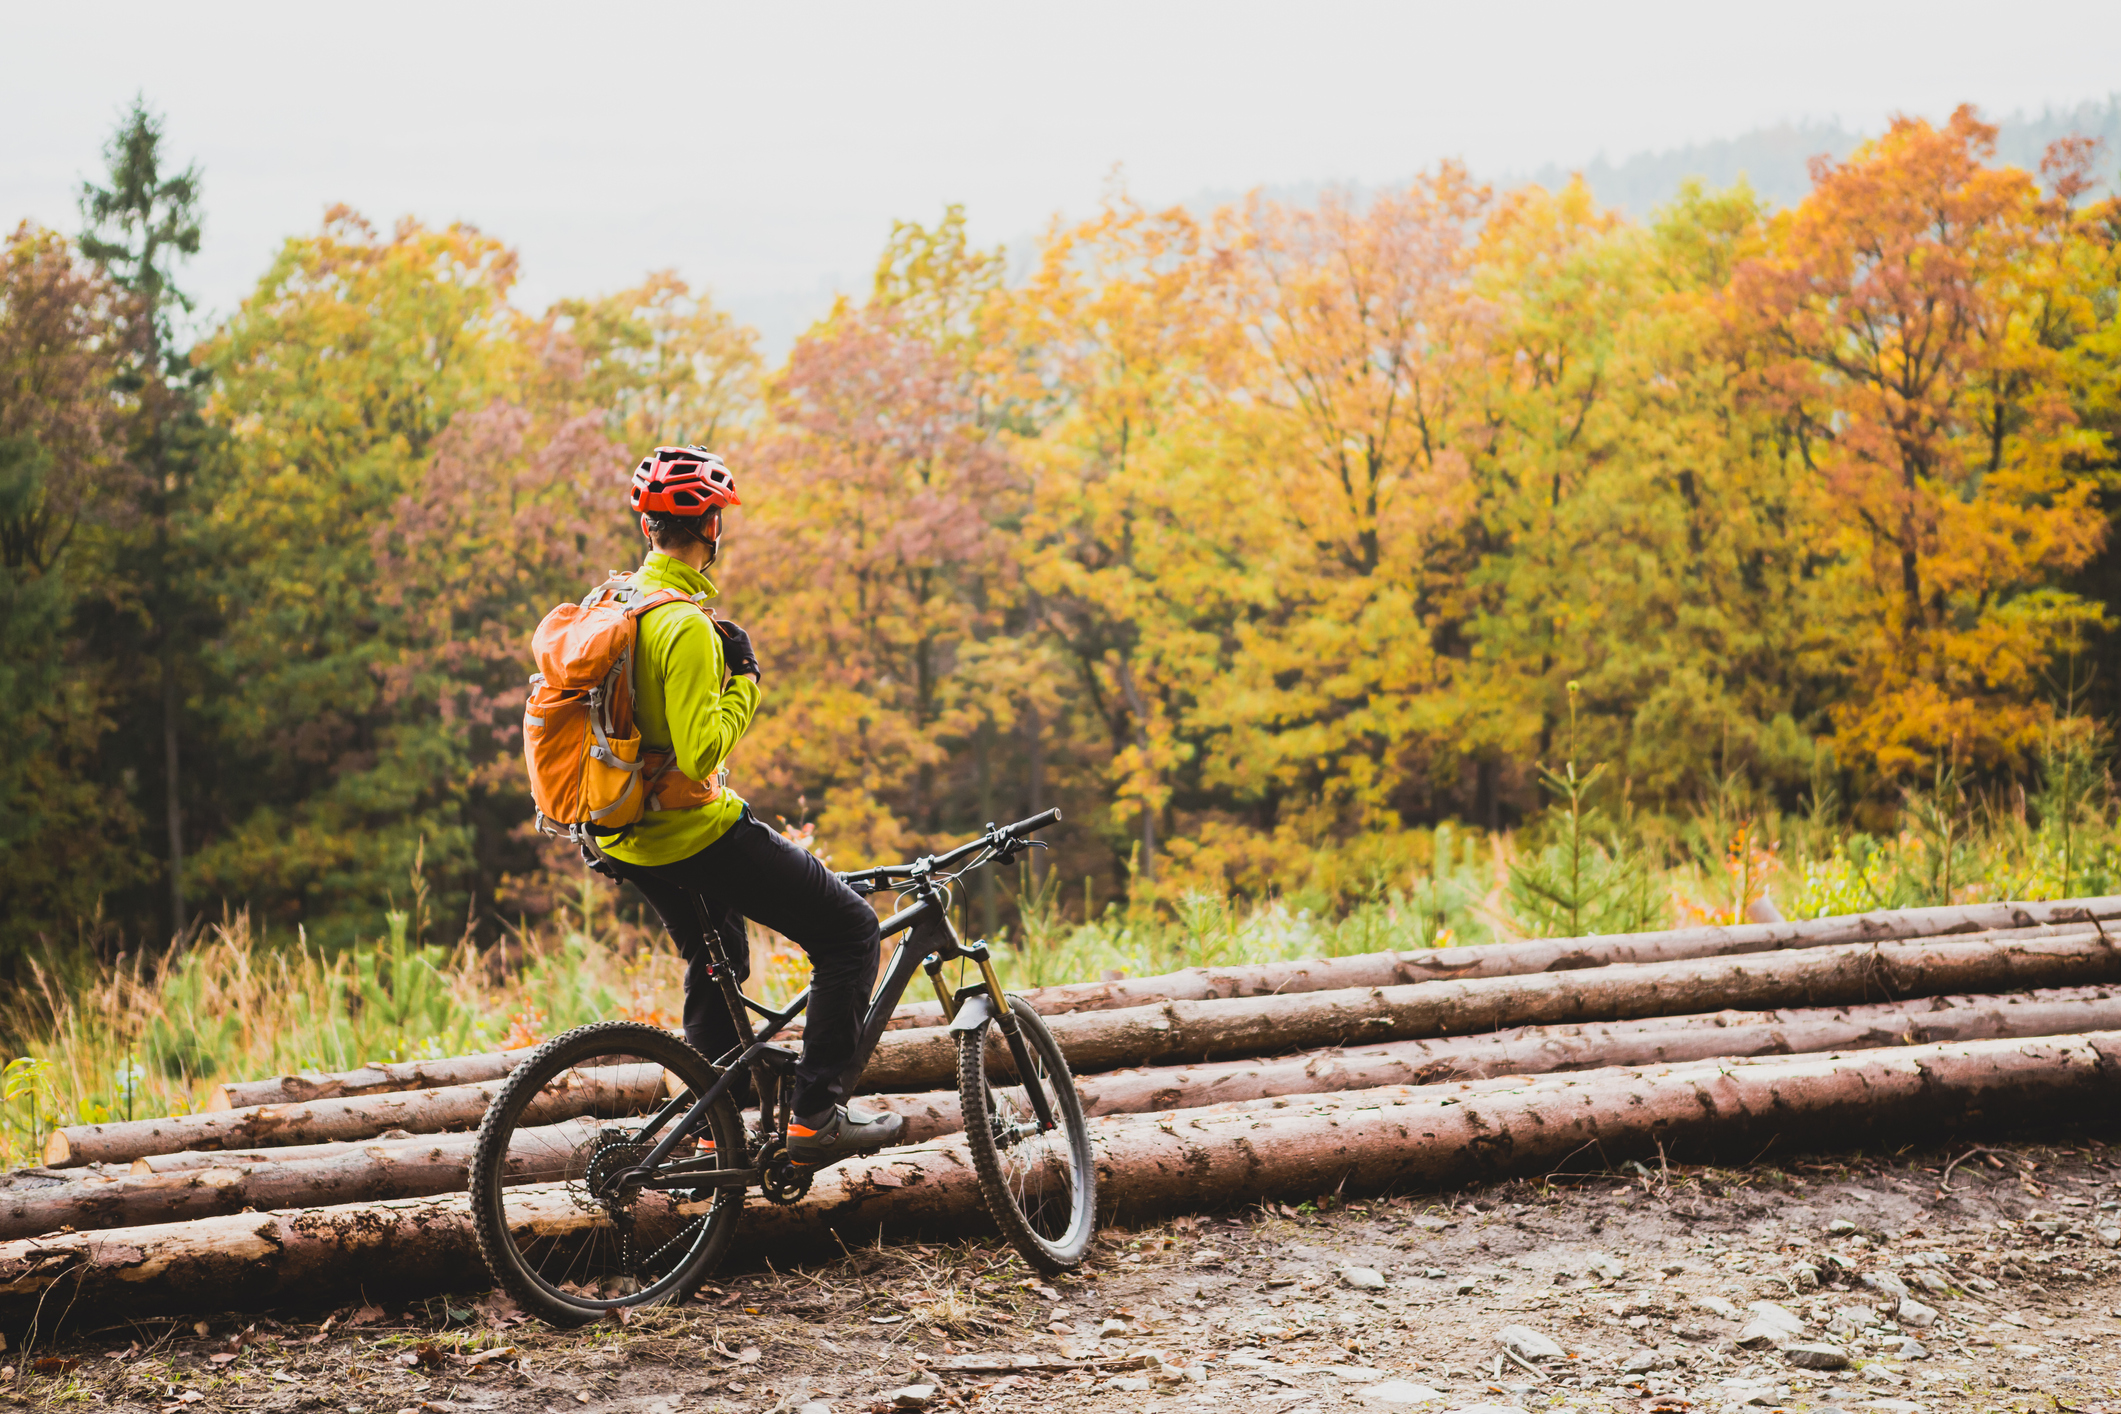 Man sitting on bike and gazing out at fall-colored trees.